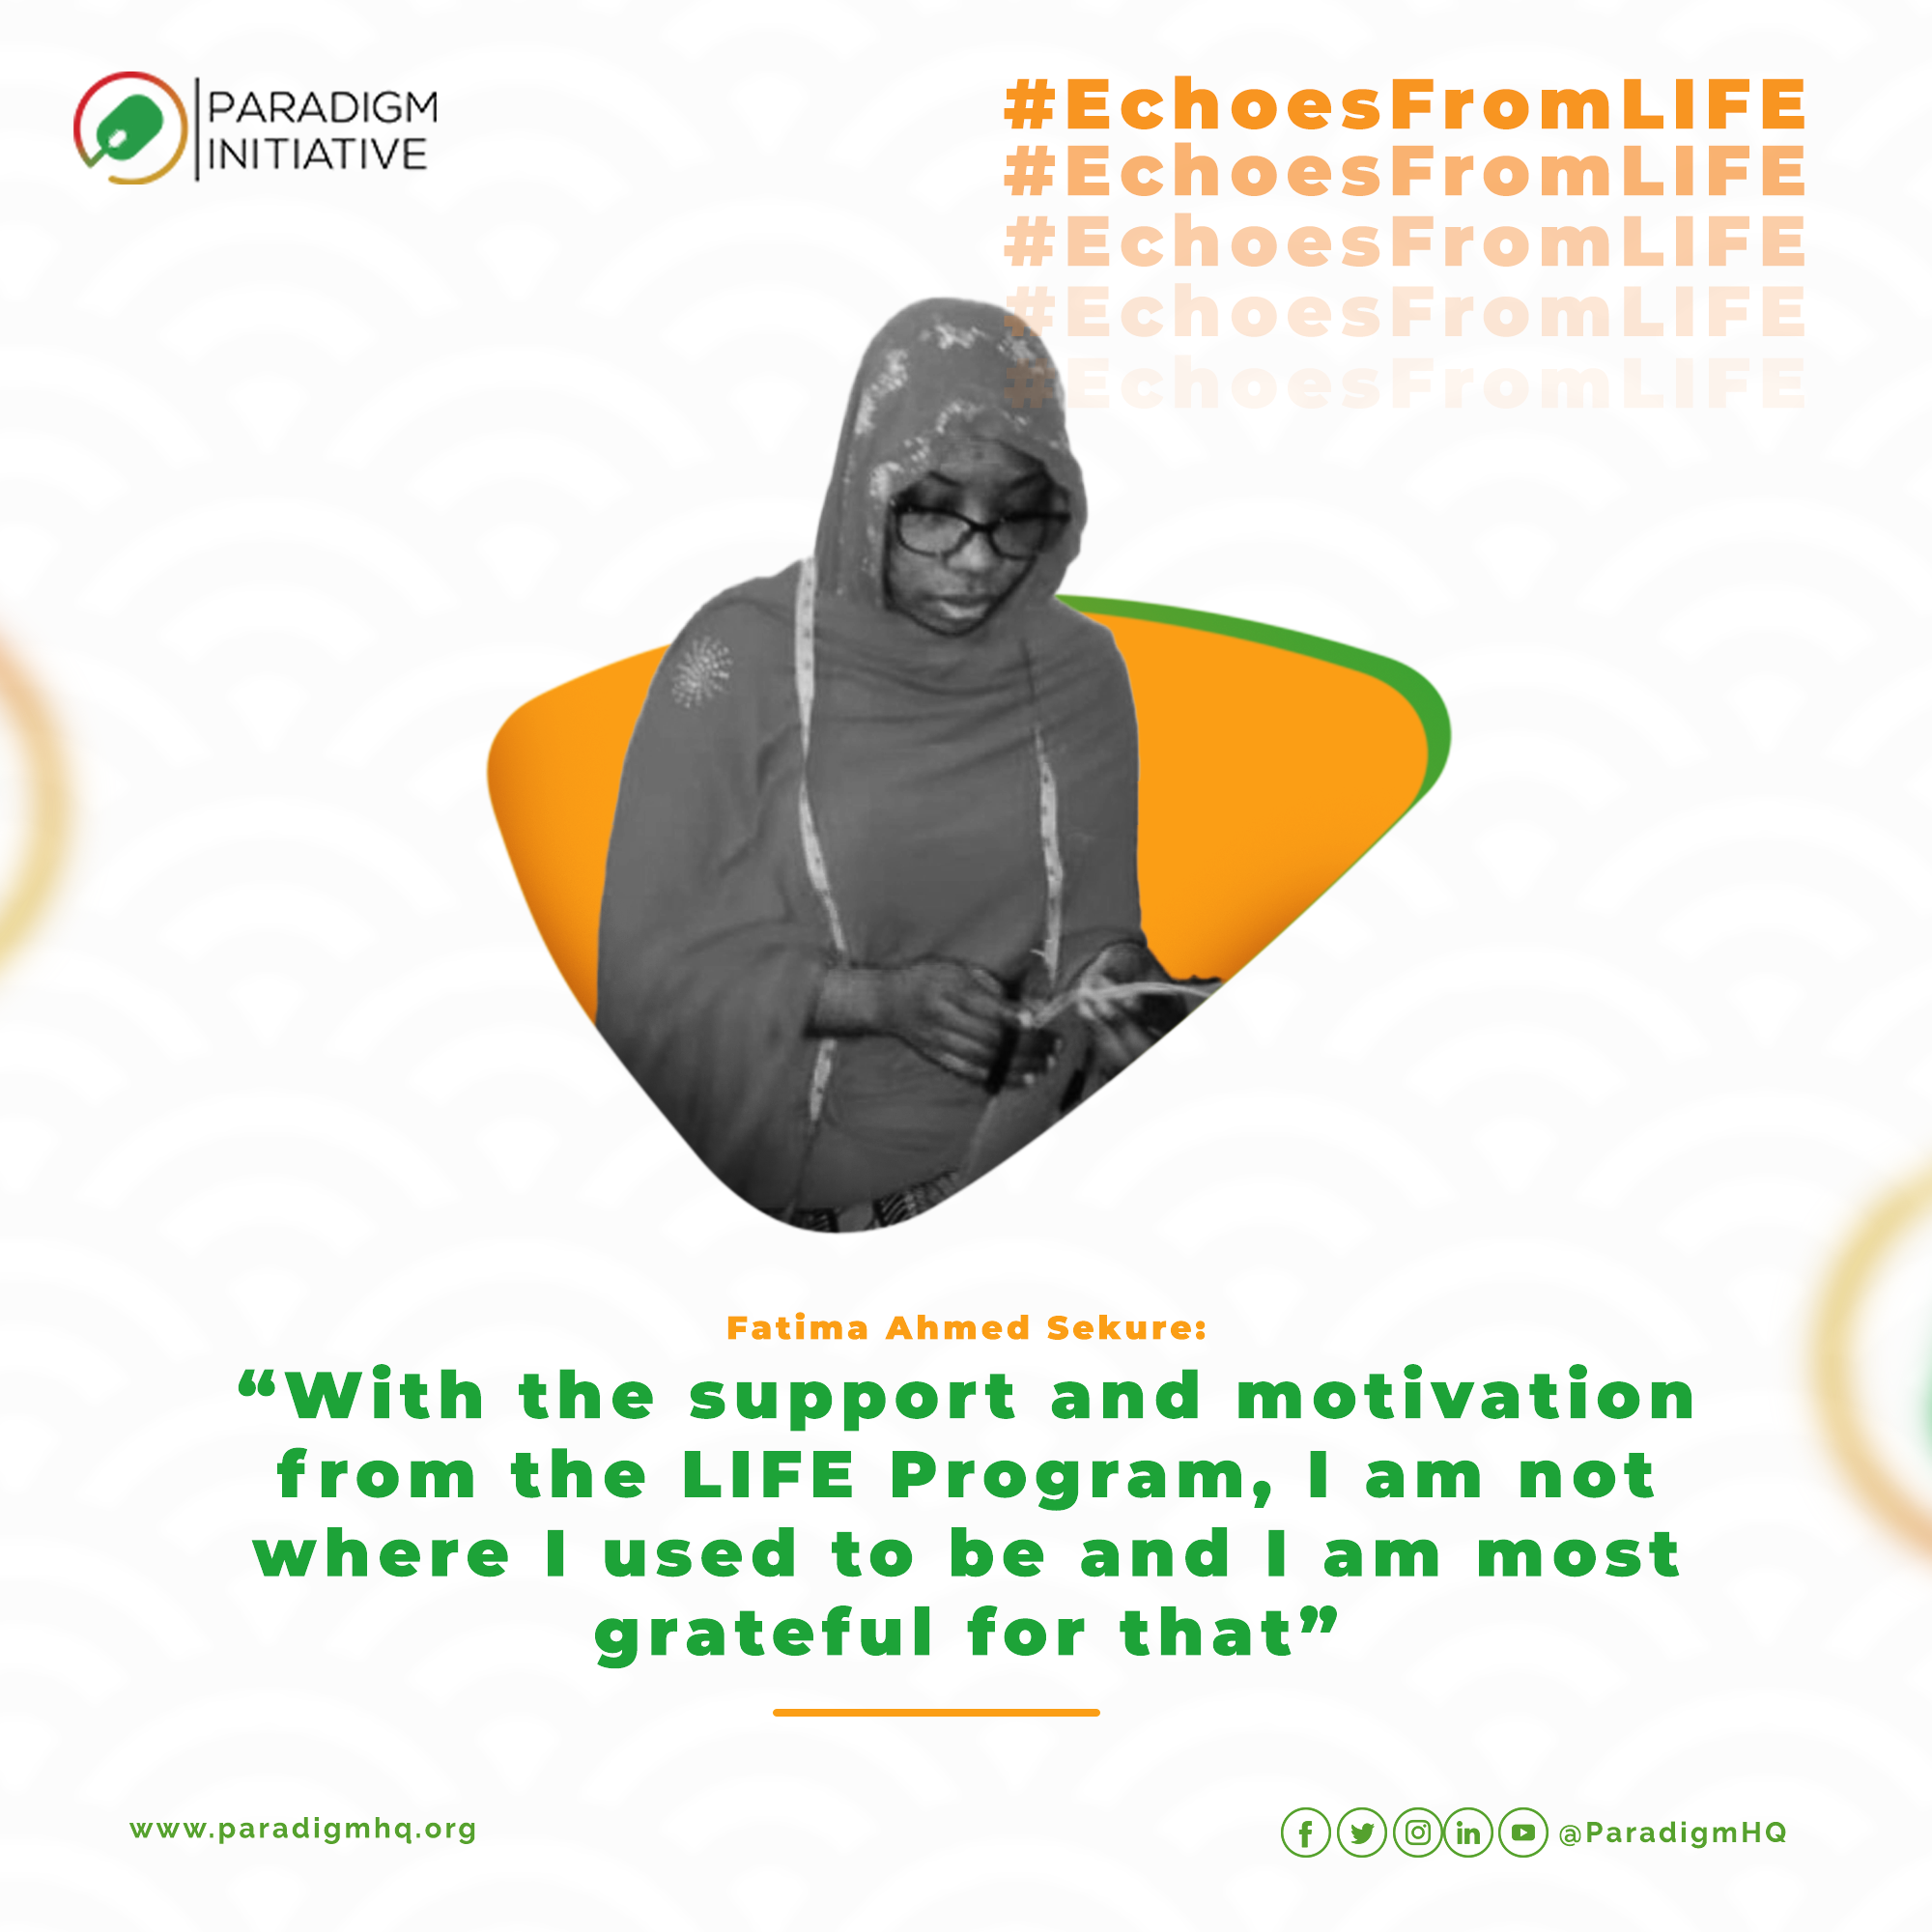 Fatima Ahmed Sehure: With the Support and Motivation from the LIFE program, I am not Where I Used to be and I am Most Grateful for That.